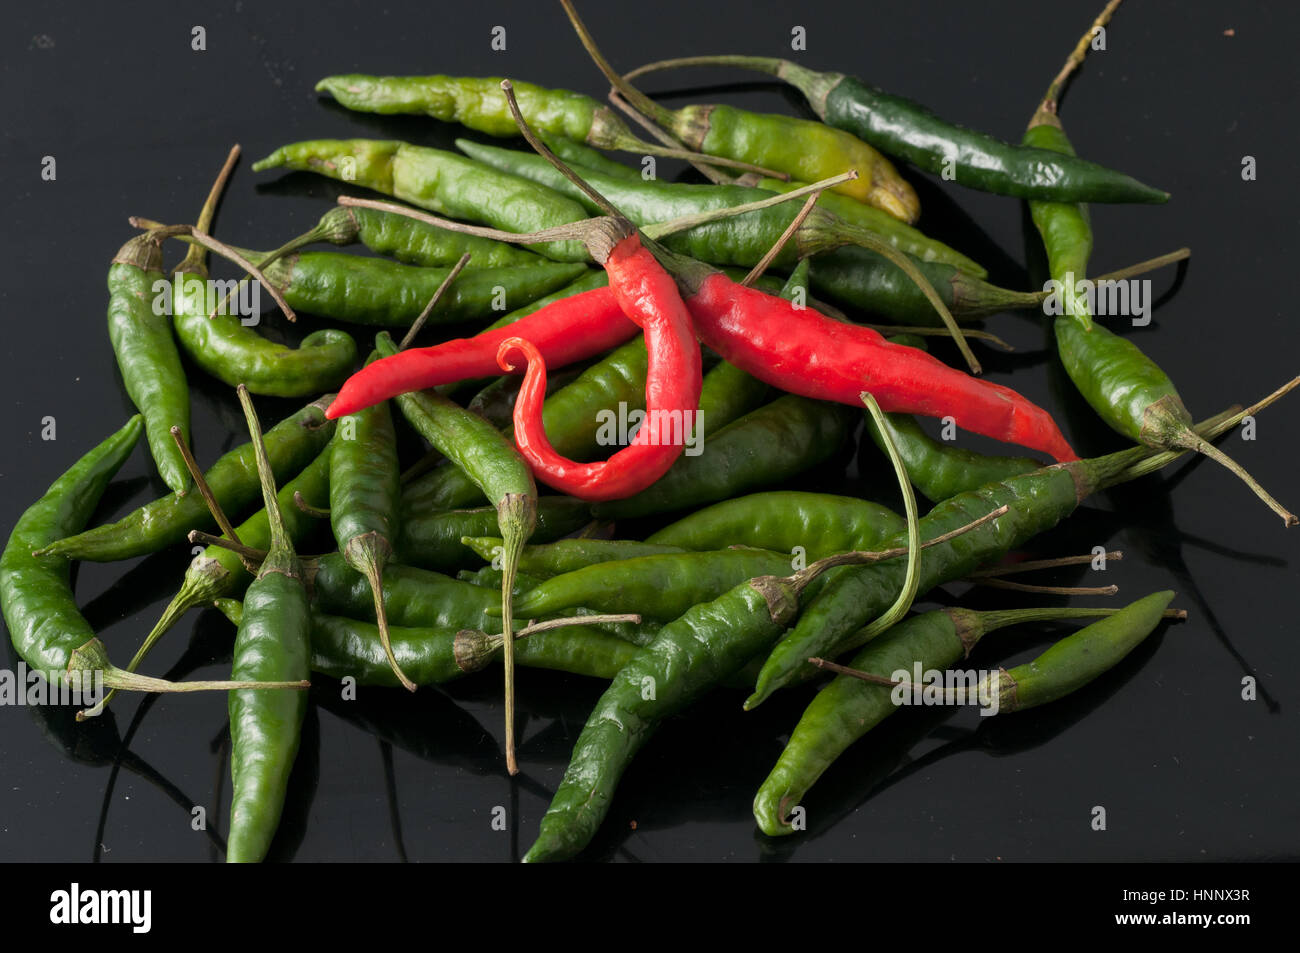 green chili peppers and red - Stock Image